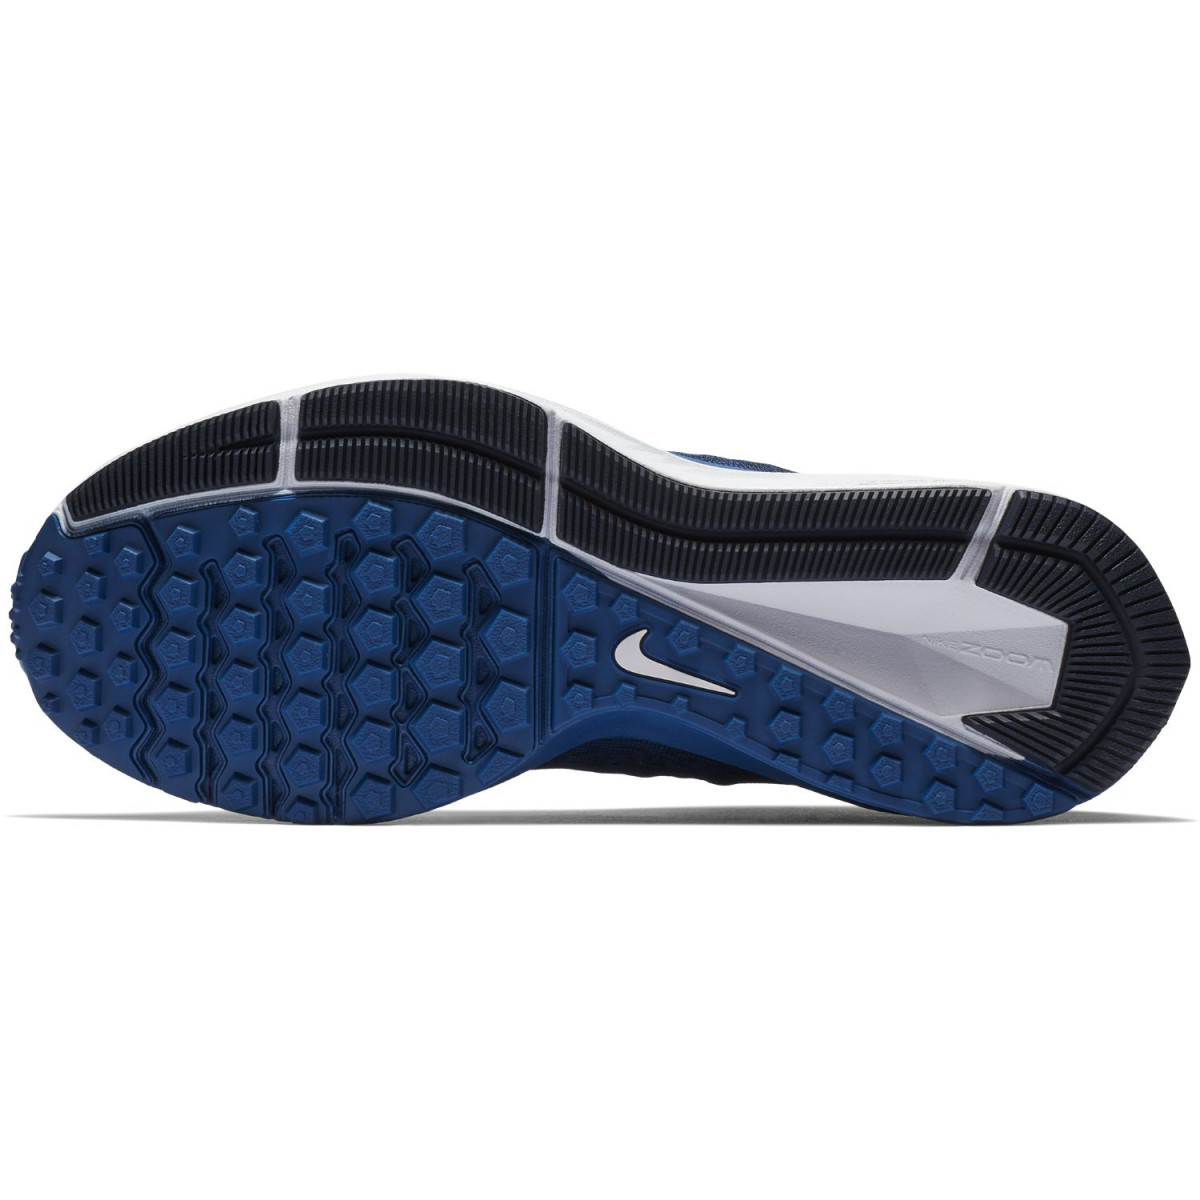 2d2092192 ... negro  huge discount f8a45 ebcd9 Zapatillas Nike Air Zoom Winflo 5 -  Running - Zapatillas - H